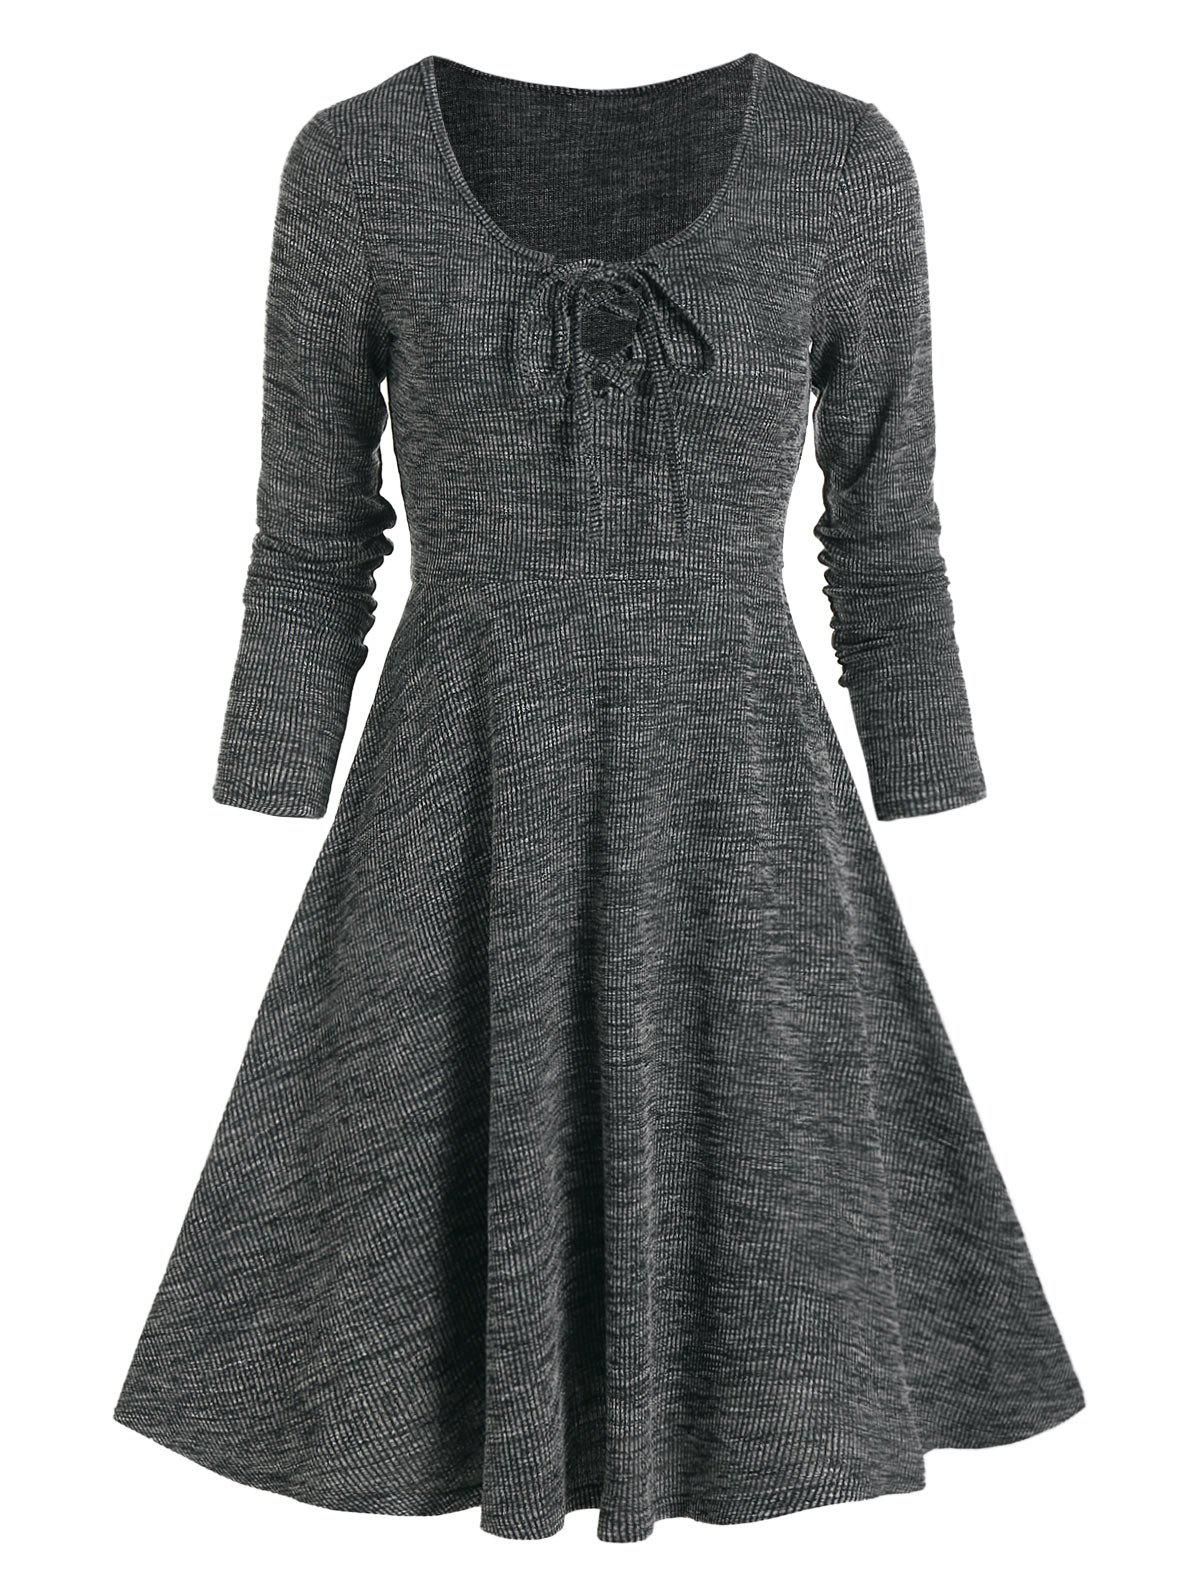 Lace Up Knitted Mini A Line Dress - ASH GRAY 3XL